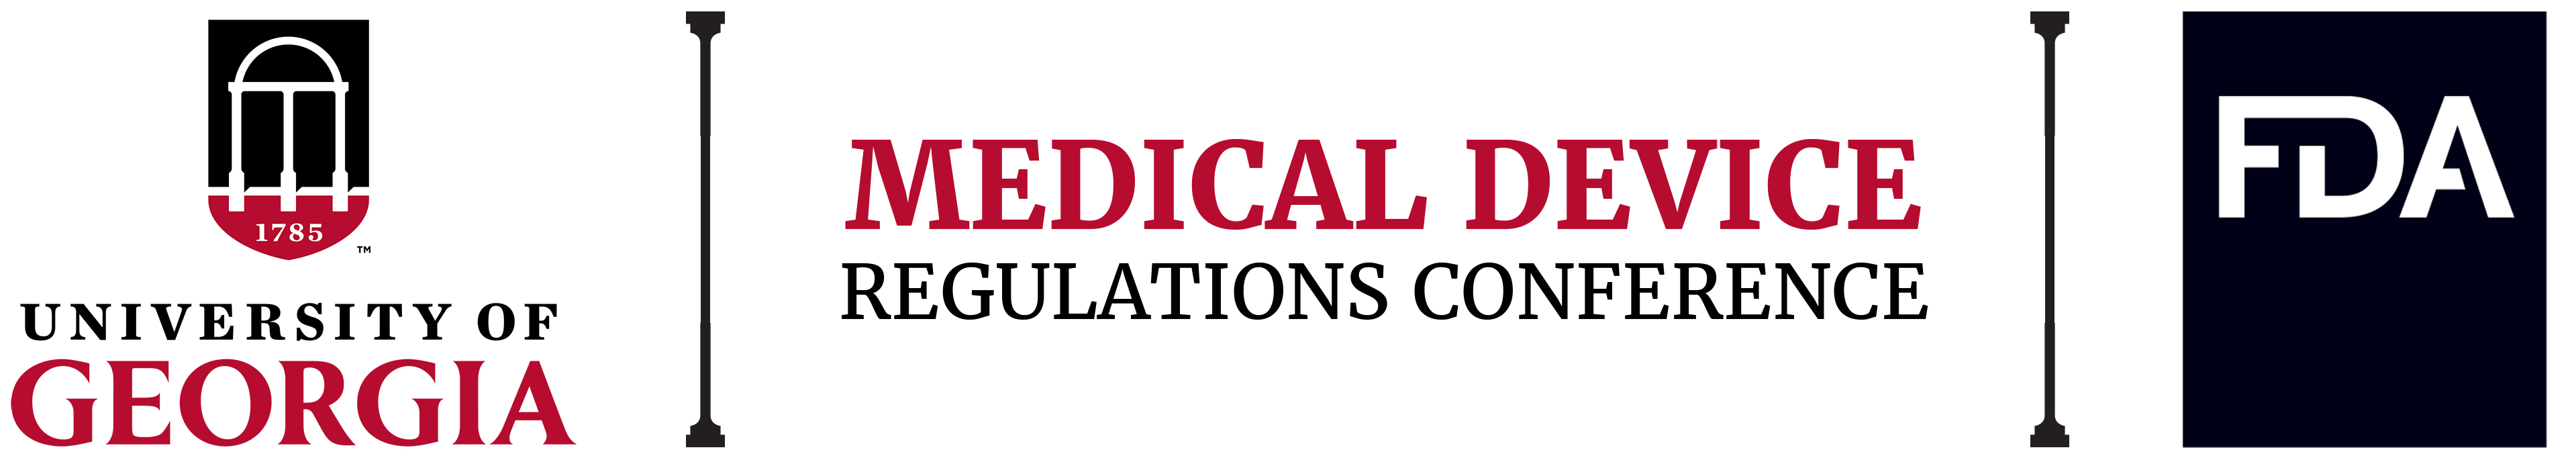 Medical Device Regulations Conference – Shaping the future